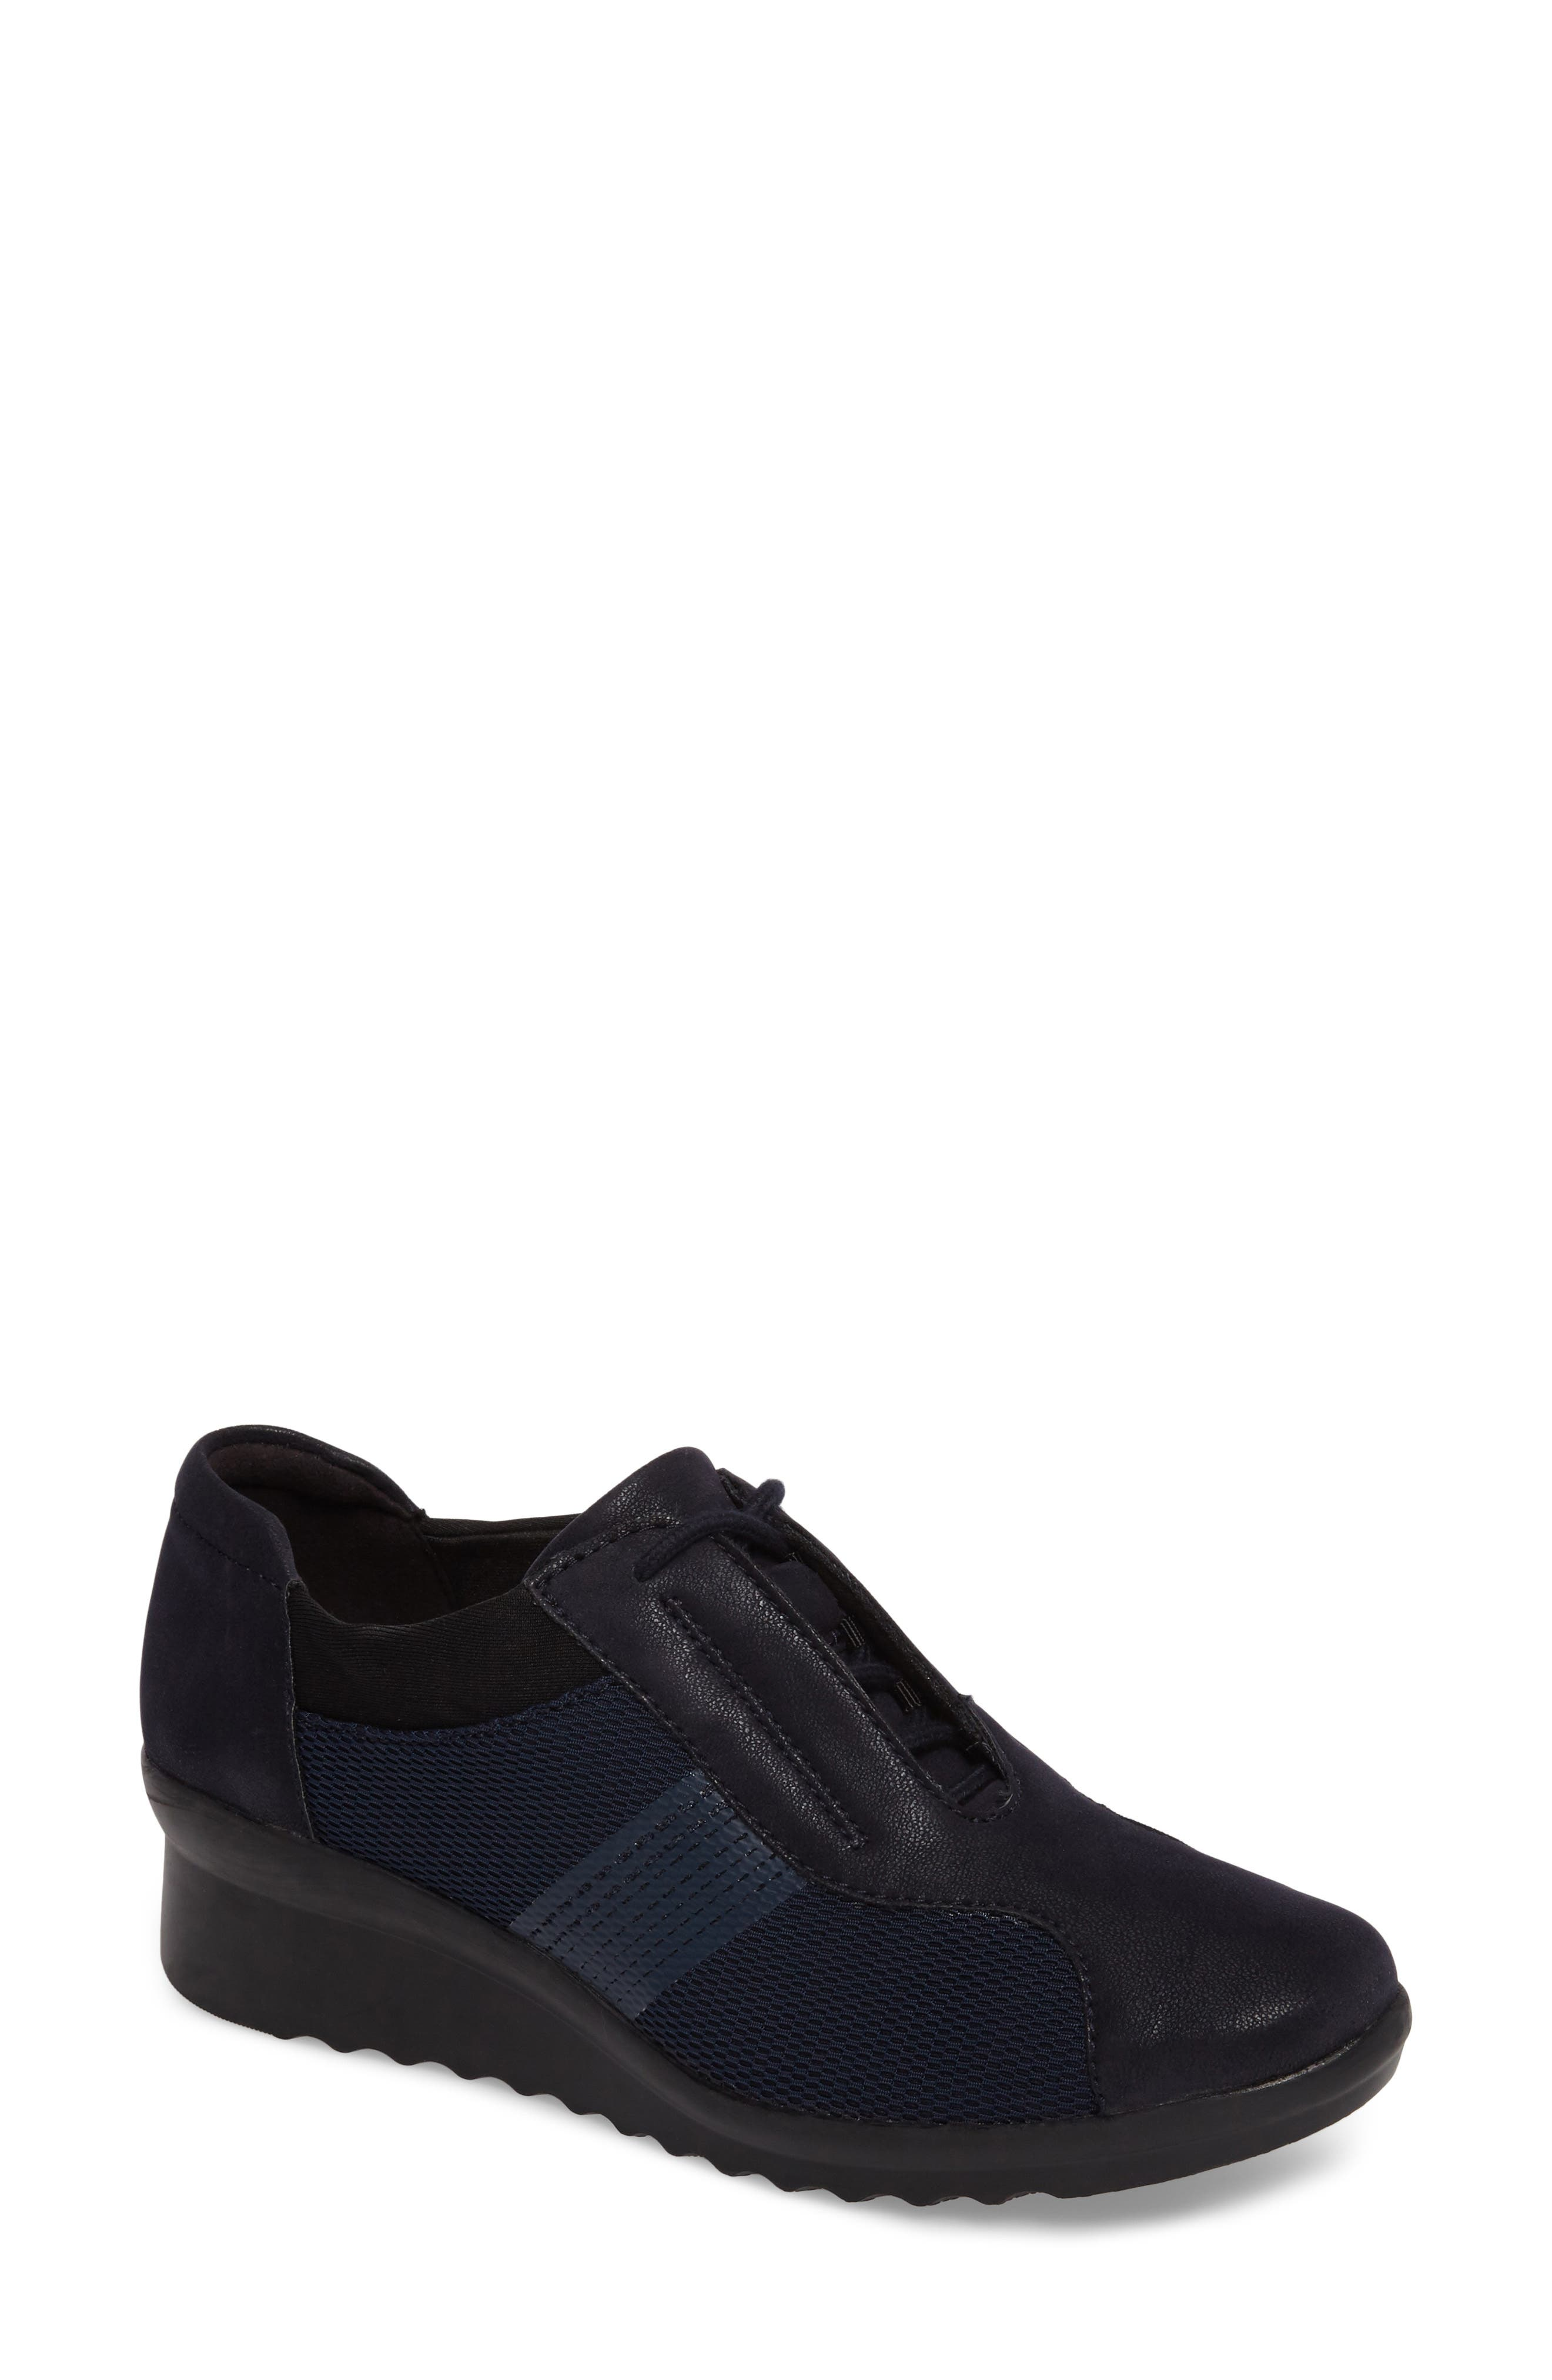 Alternate Image 1 Selected - Clarks® Caddell Fly Sneaker (Women)